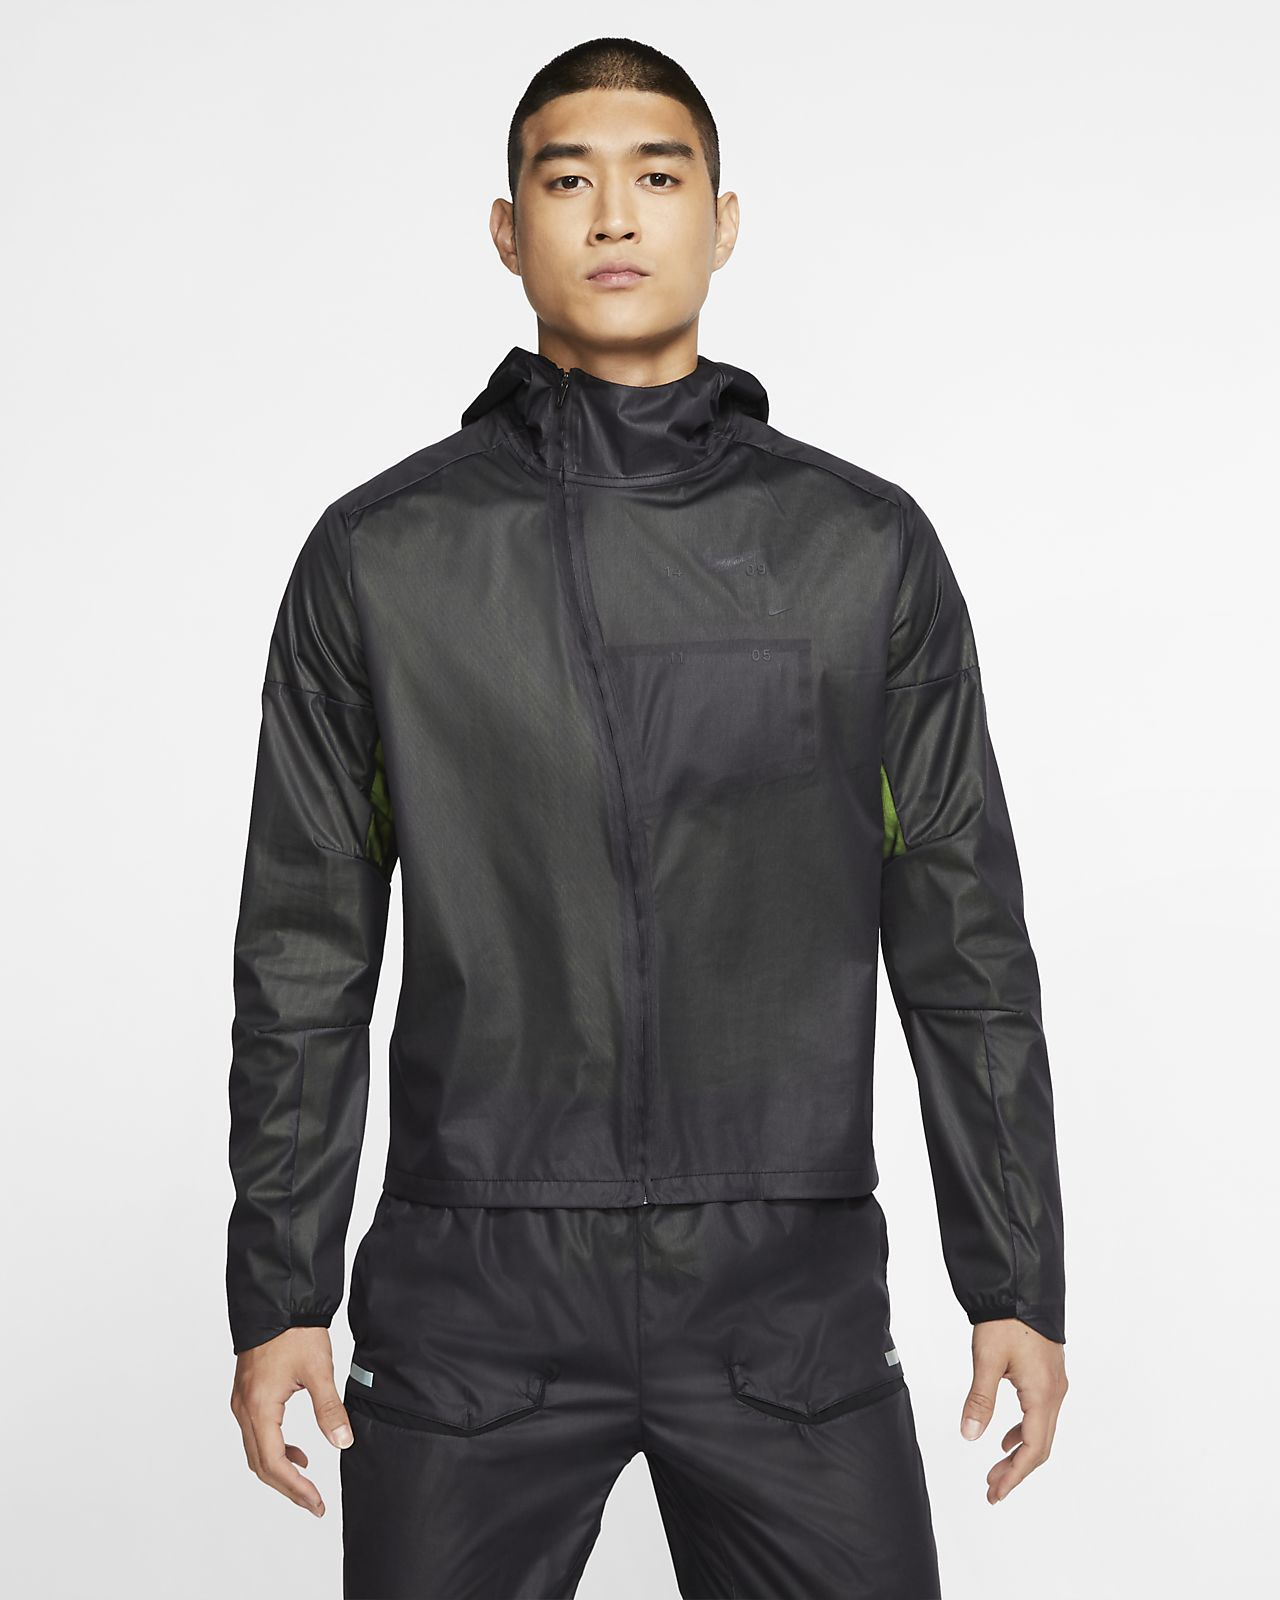 Nike Tech Pack Men's 3Layer Running Jacket. in